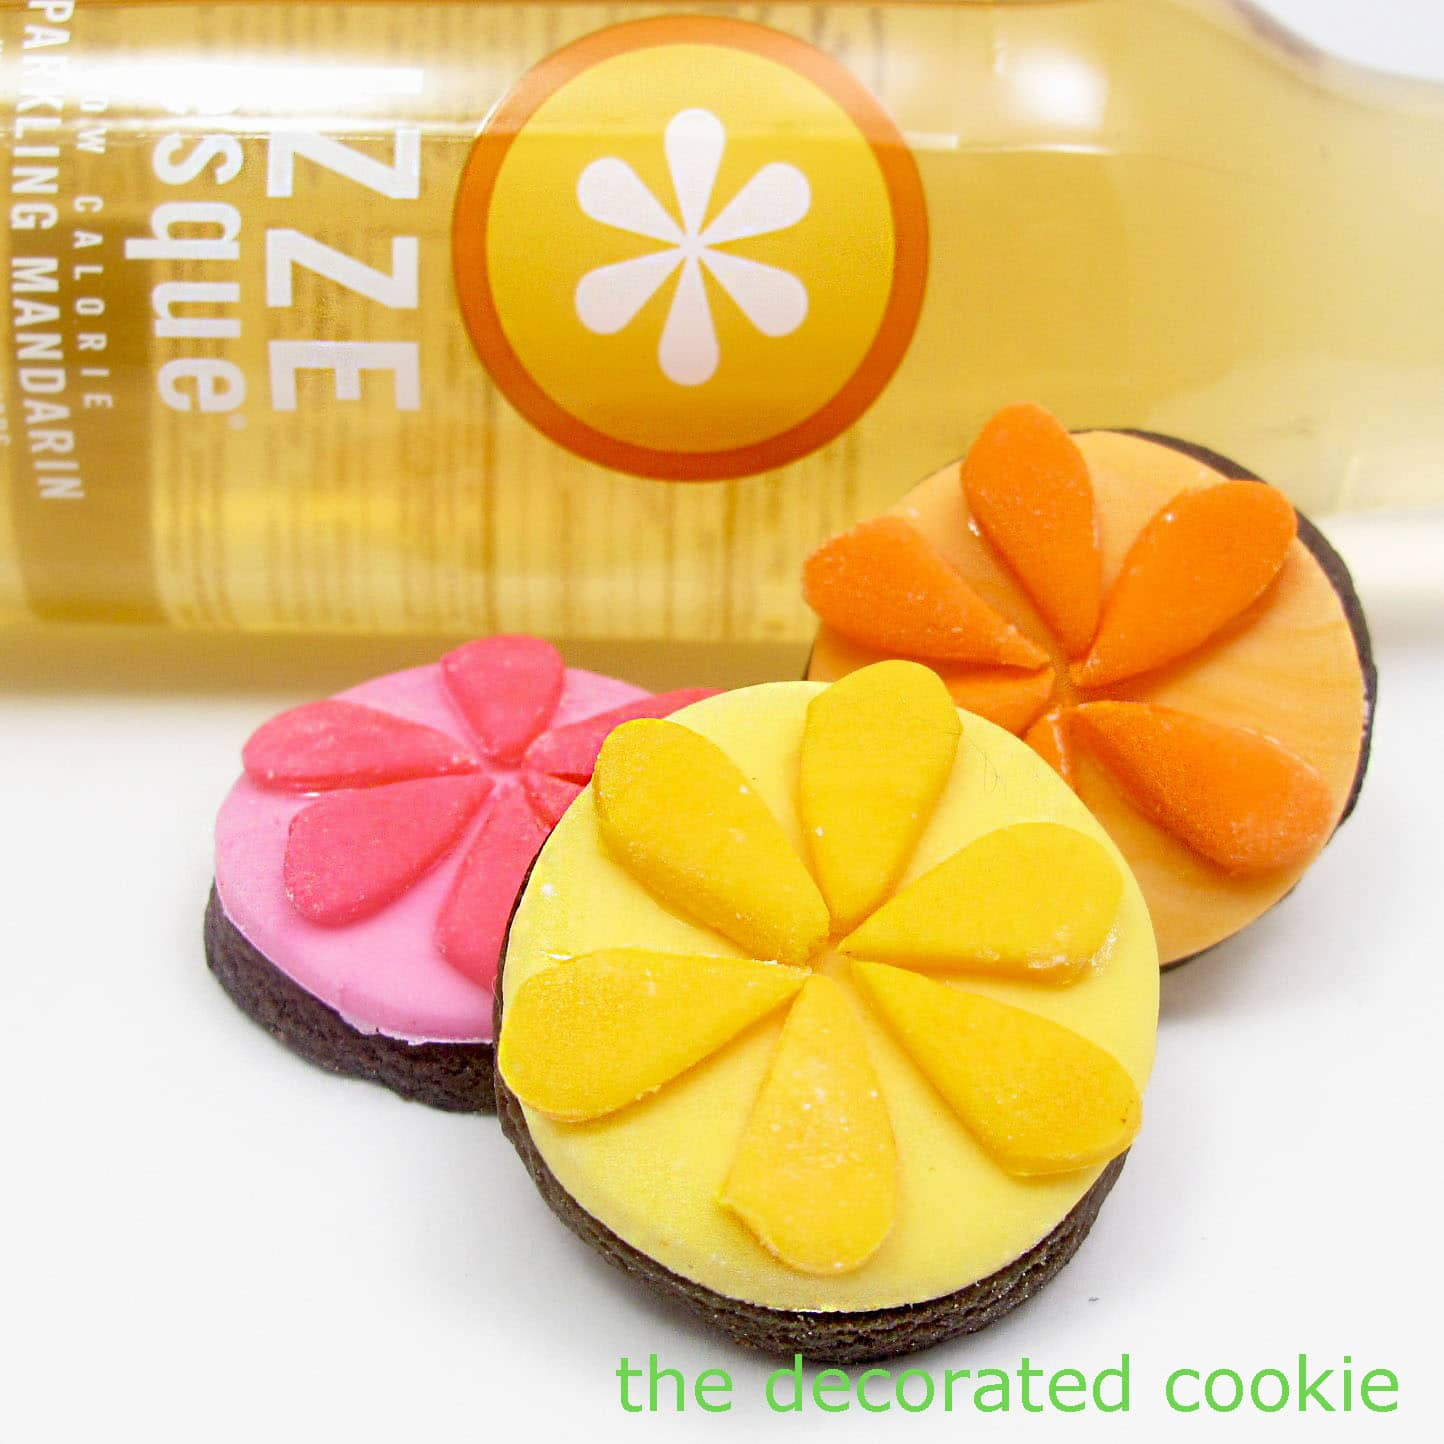 IZZE and some cookiesThe Decorated Cookie